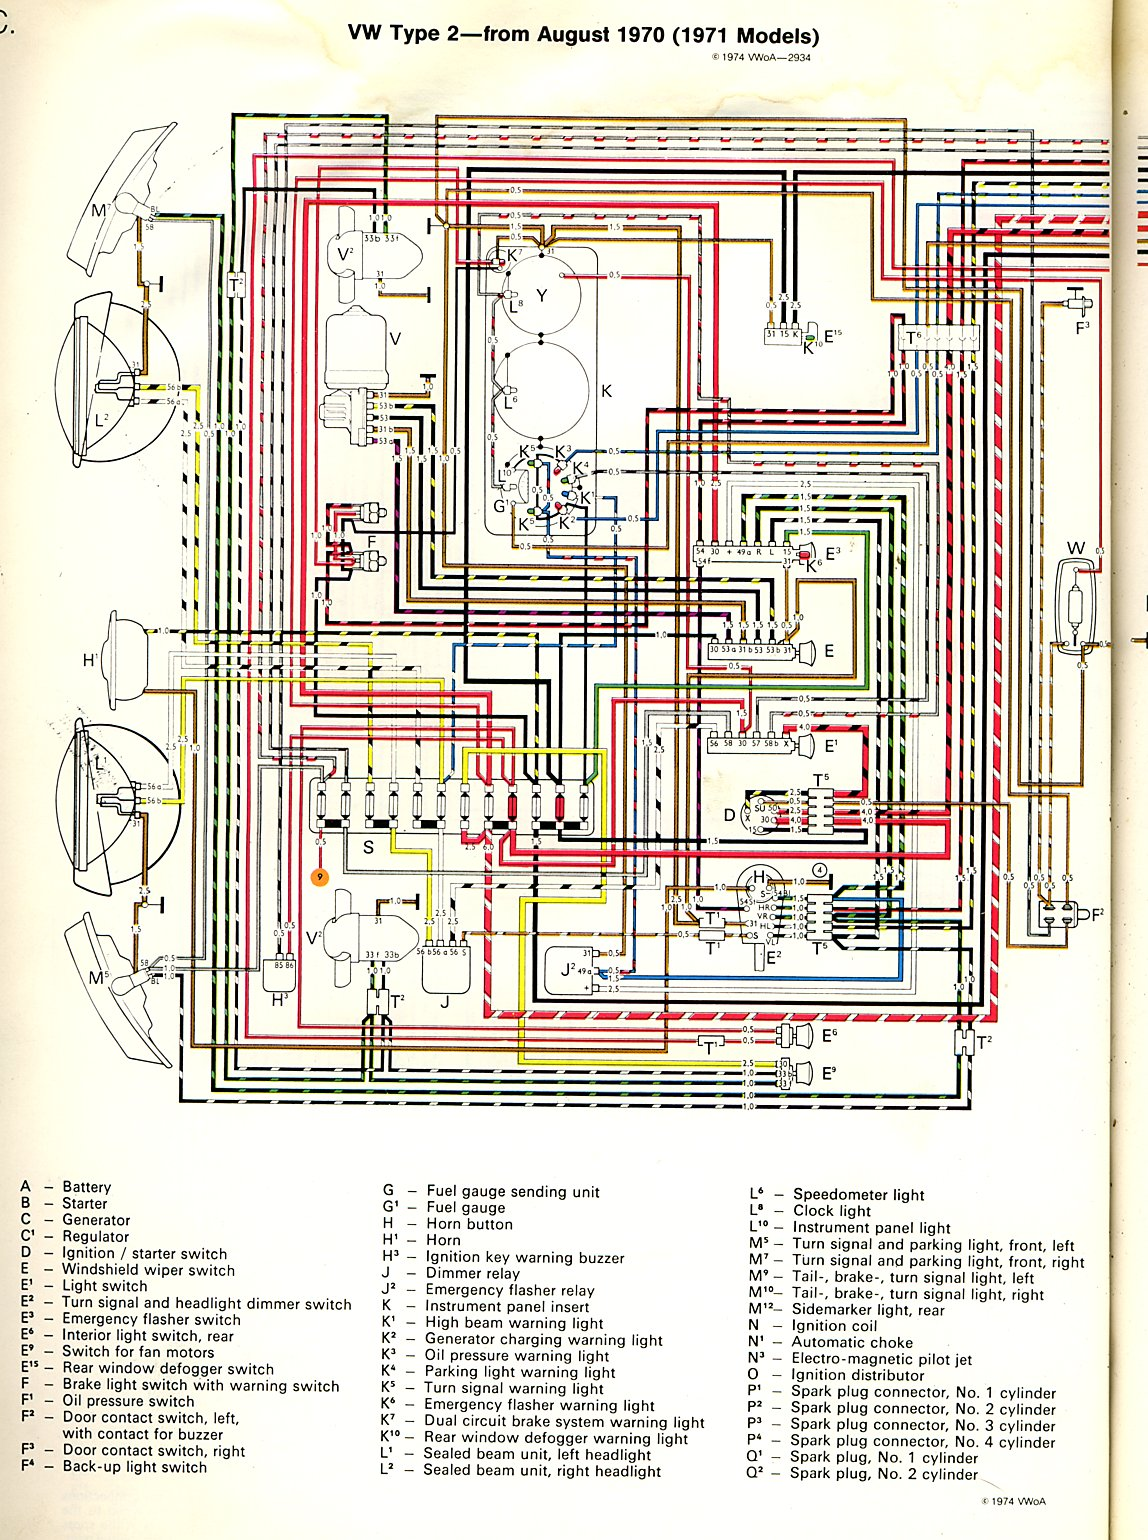 baybus_71a thesamba com type 2 wiring diagrams 69 vw wiring diagram at readyjetset.co